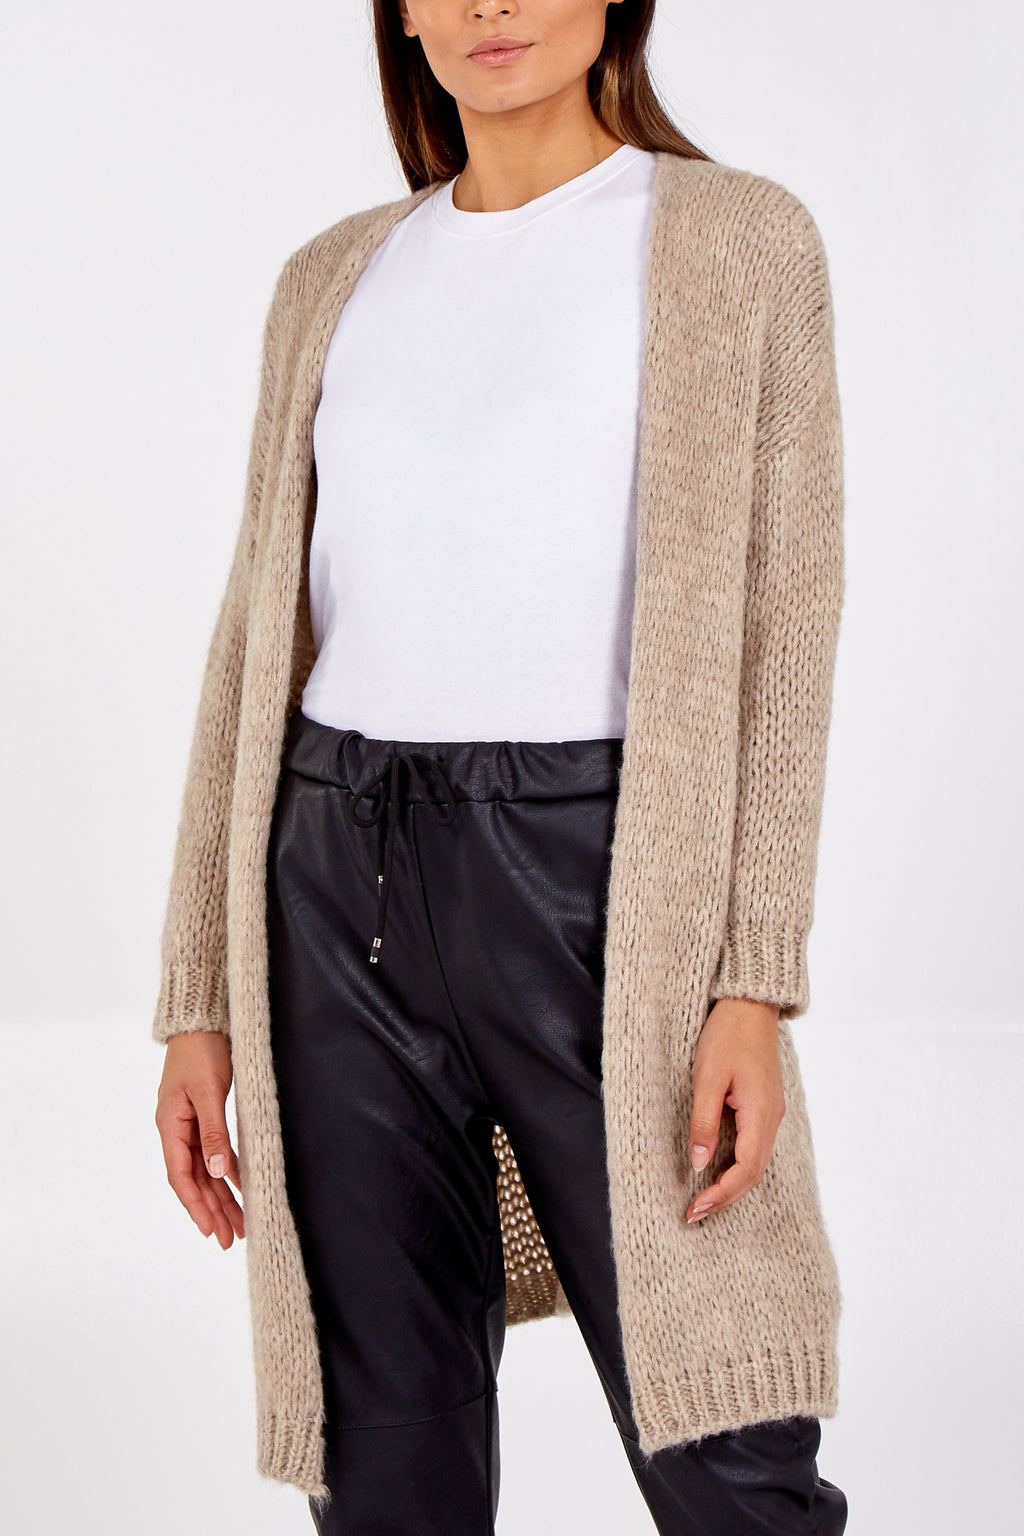 Edge To Edge Mid Length Knitted Cardigan